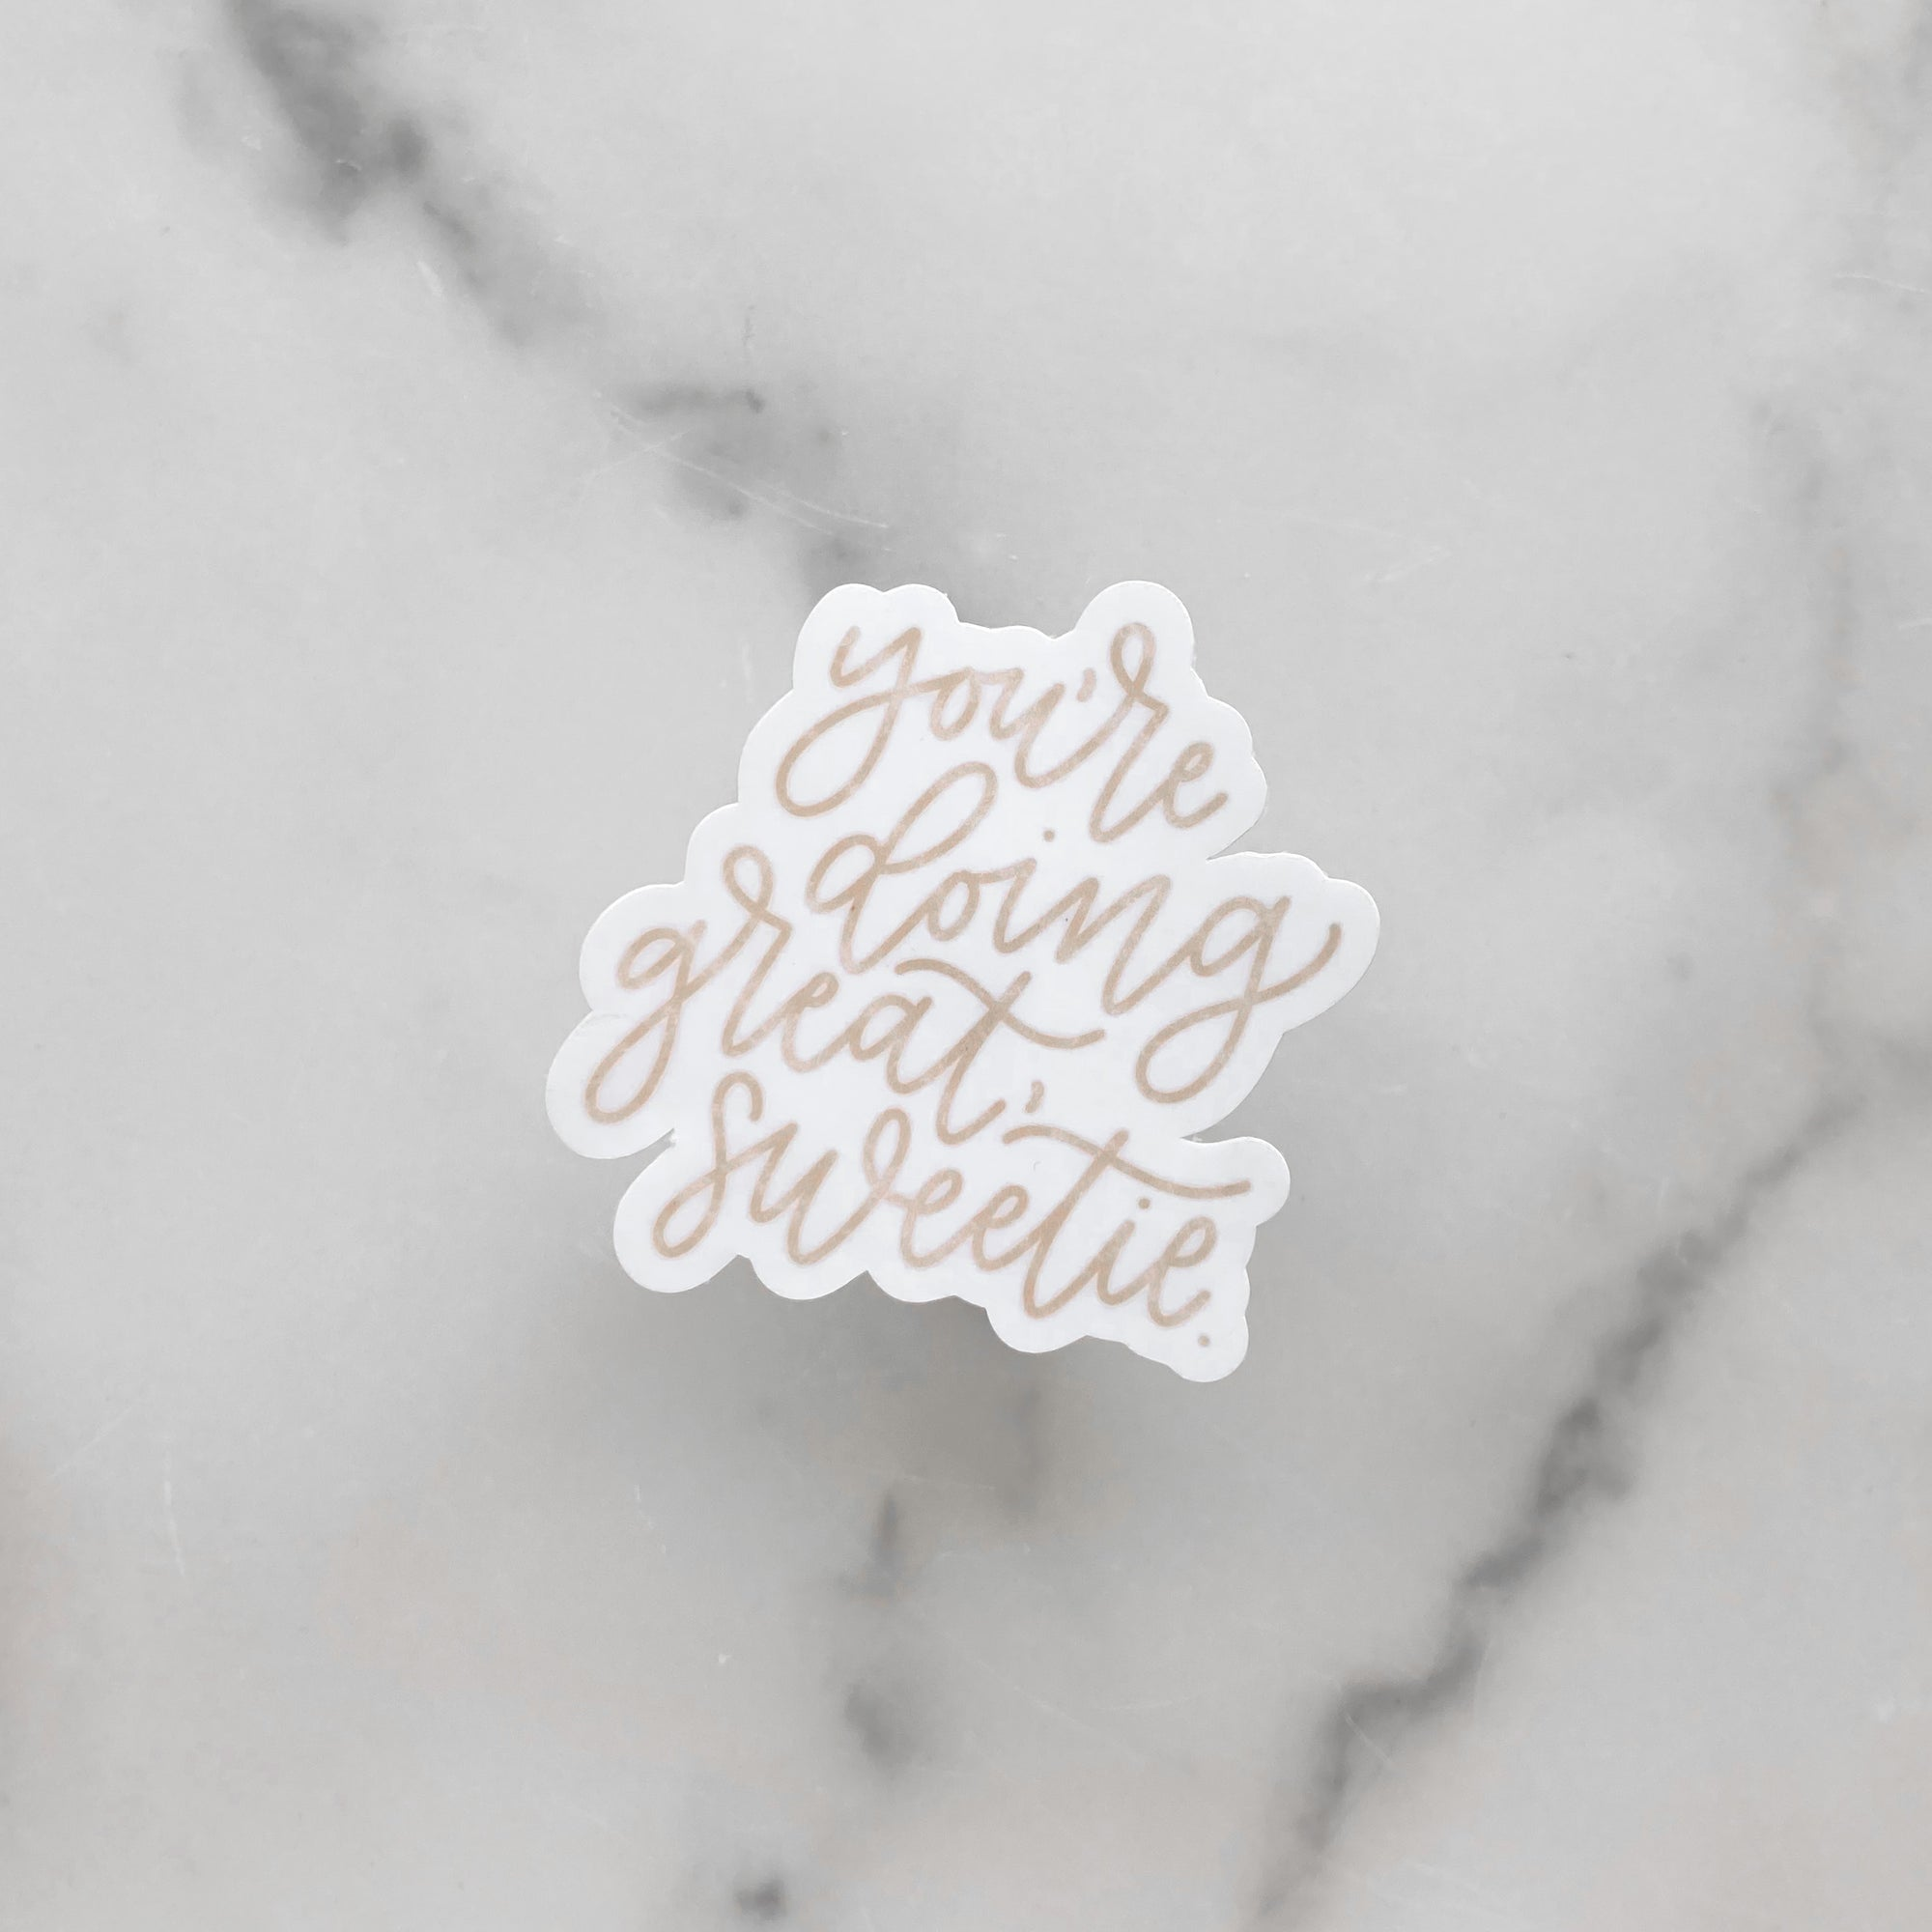 You're Doing Great Sweetie | Waterproof Sticker